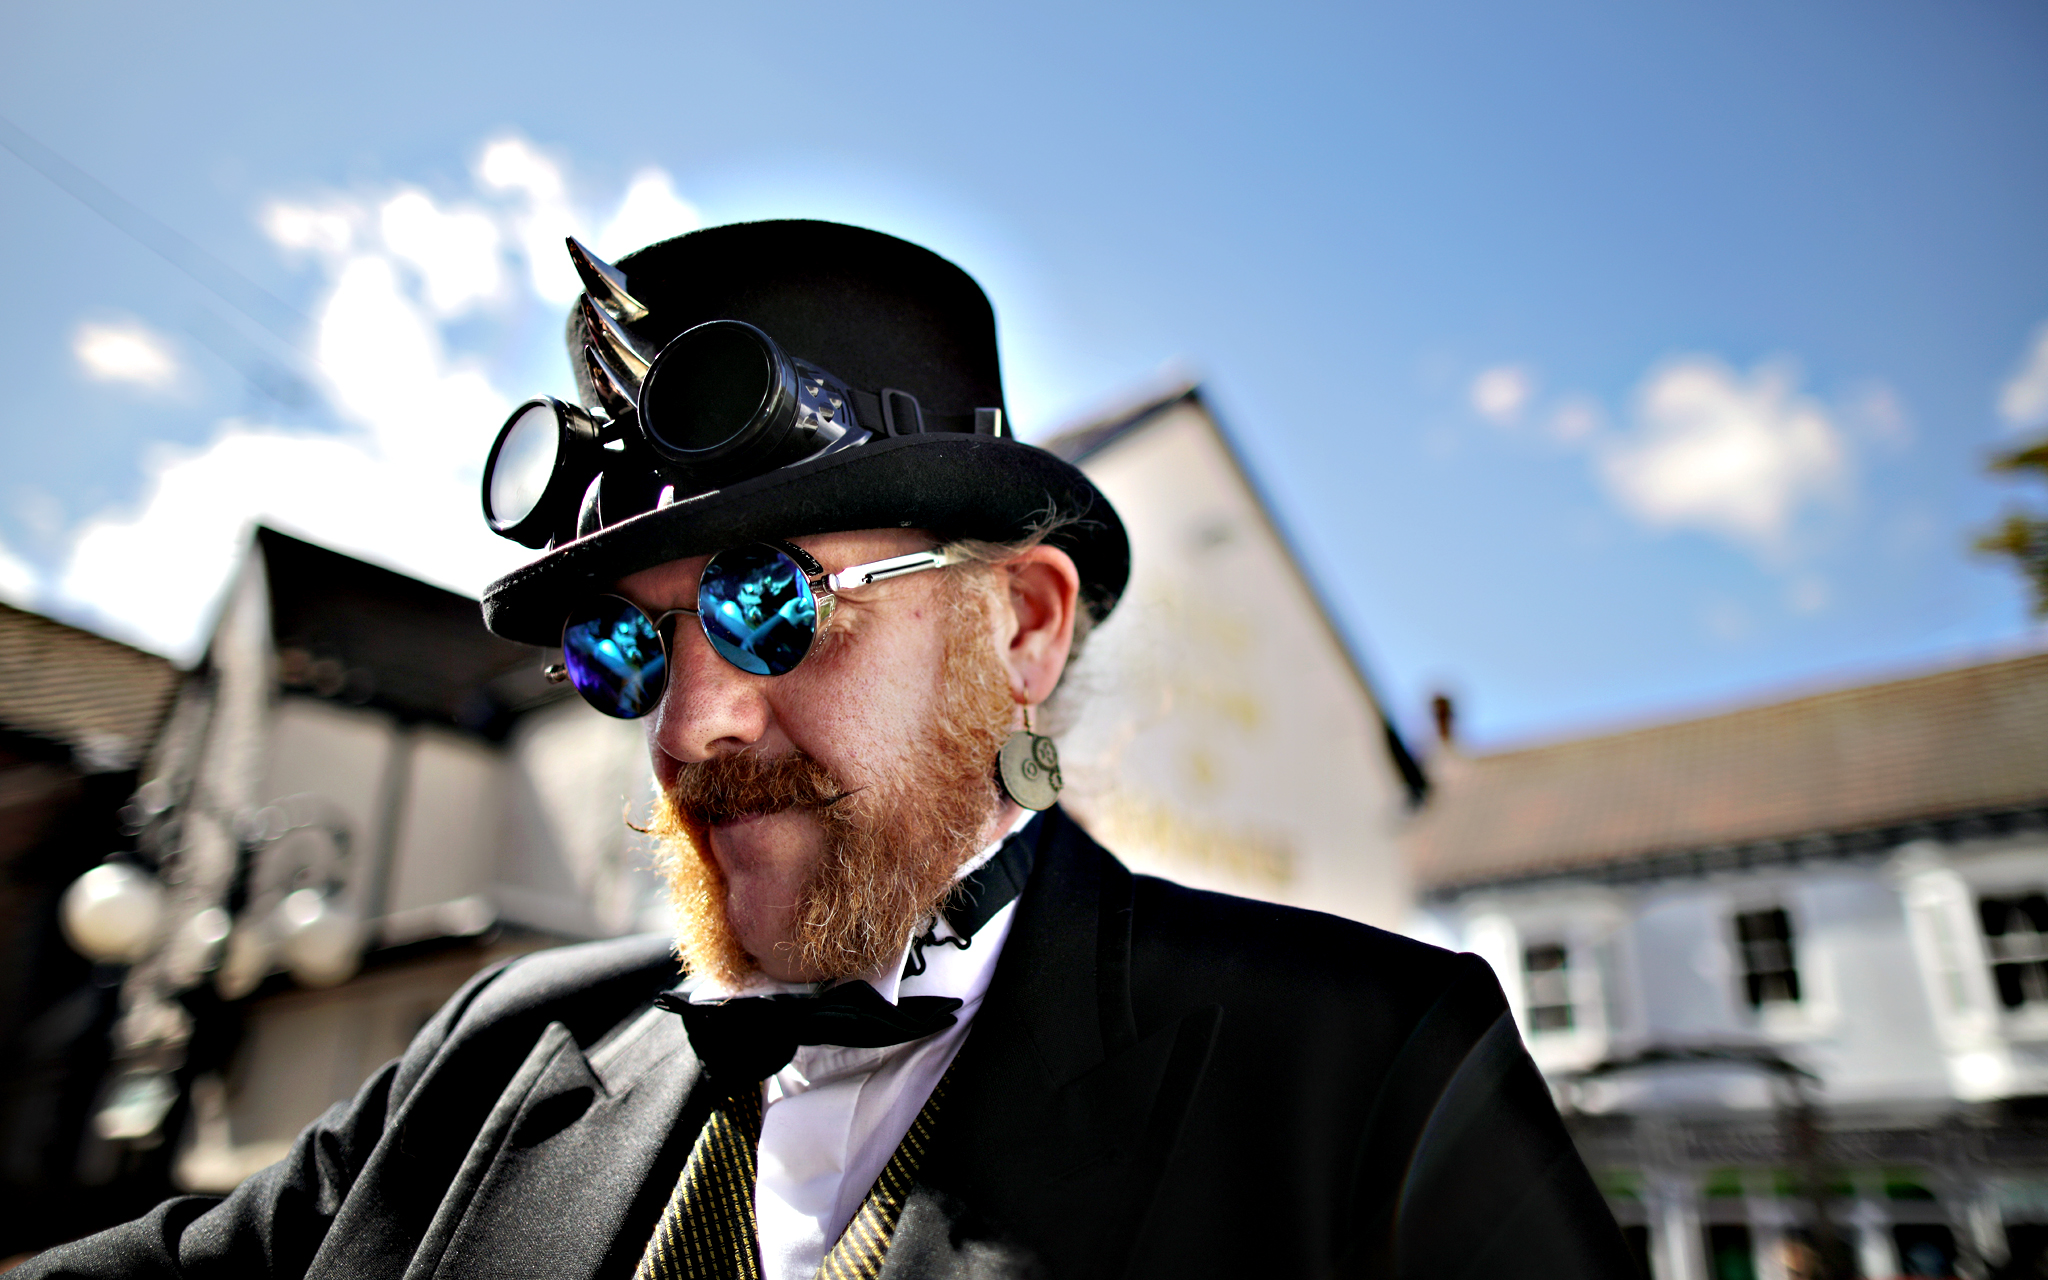 Steampunk enthusiasts arrive to attend the Asylum Steampunk festival on August 28, 2015 in Lincoln, England. The Asylum Steampunk Festival is the largest and longest running steampunk festival in the world and attracts participants from around the globe. During the weekend festival the picturesque and historic City of Lincoln is transformed by followers who attend. Steampunk refers to a subgenre of science fiction and literature that incorporates technology and clothing inspired by 19th-century industrial steam-powered machinery